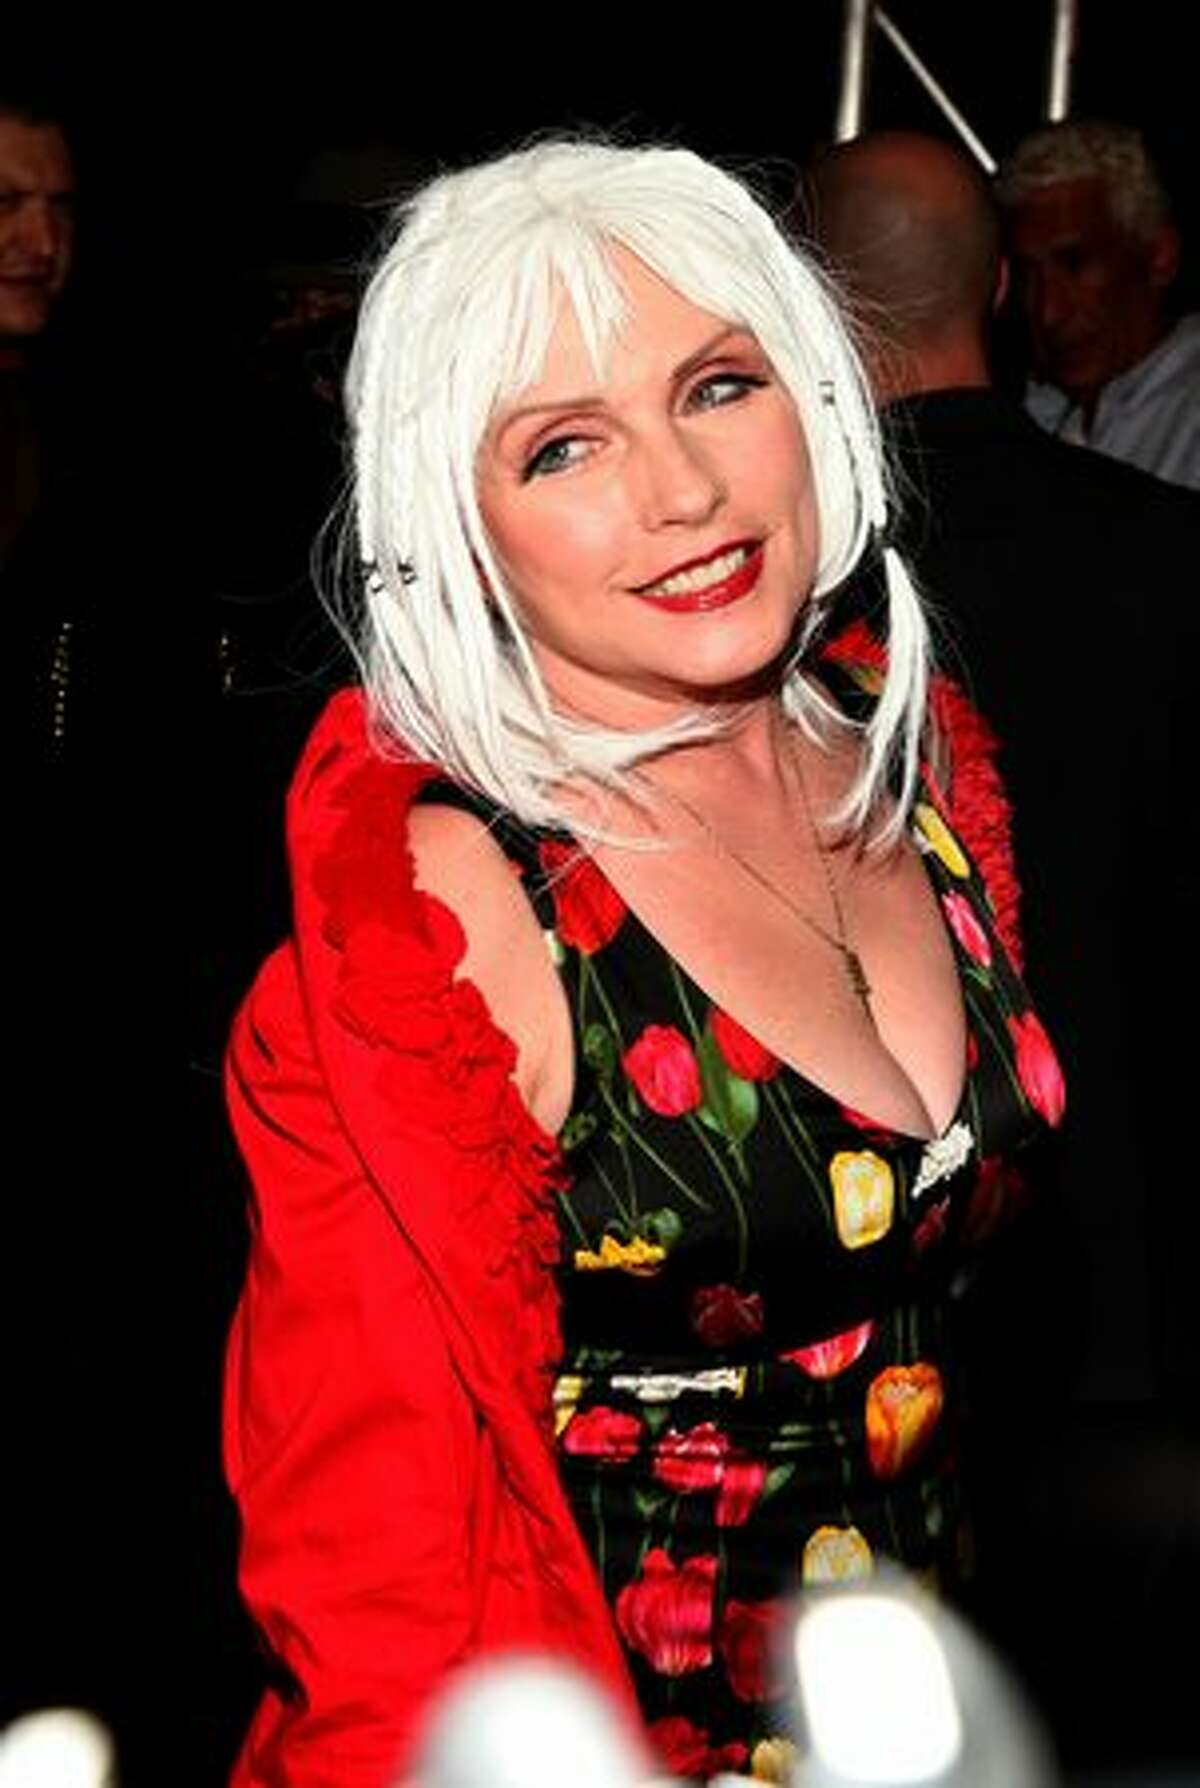 Singer Deborah Harry attends Starbucks Frappuccino at L.A.M.B Spring 2011 fashion show during Mercedes-Benz Fashion Week Spring 2011 in New York City.